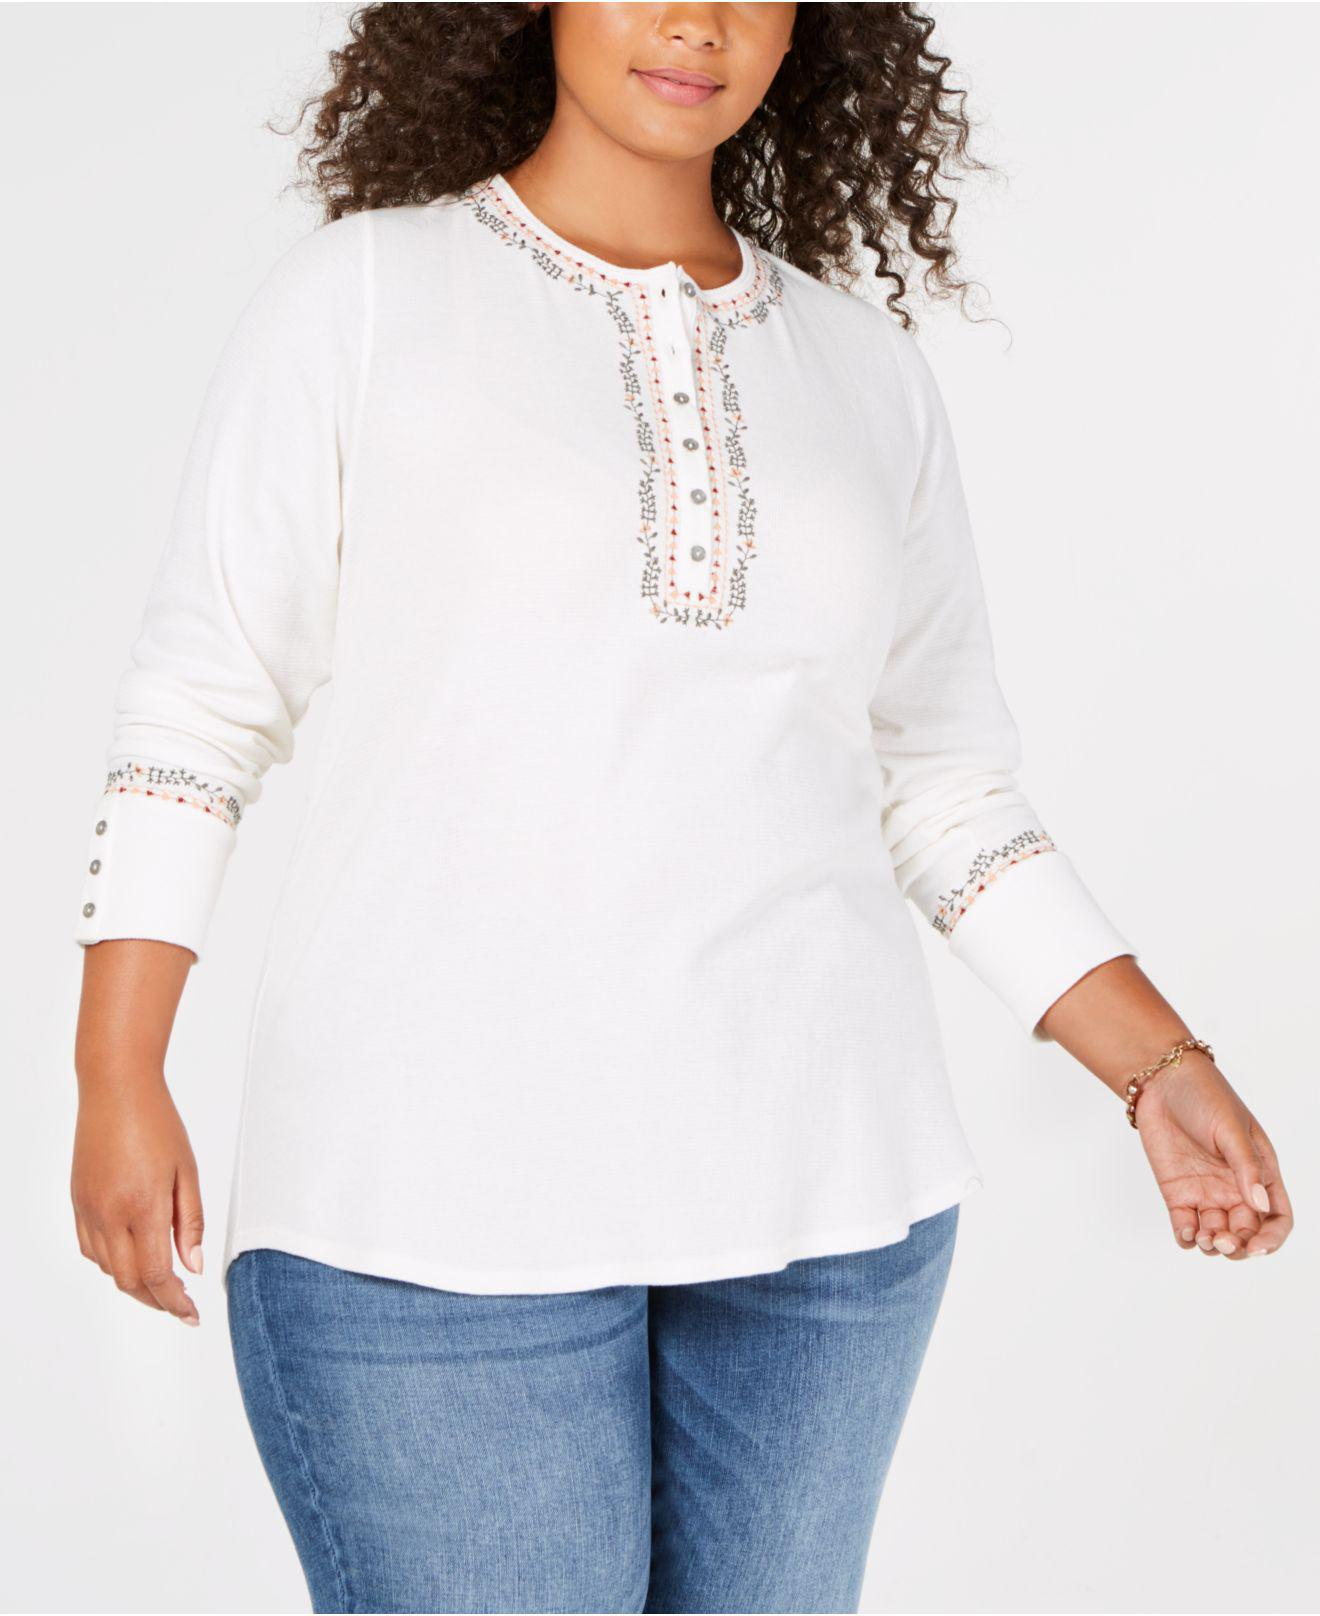 159b388fc01a1 Lucky Brand. Women s White Trendy Plus Size Cotton Embroidered Henley Top